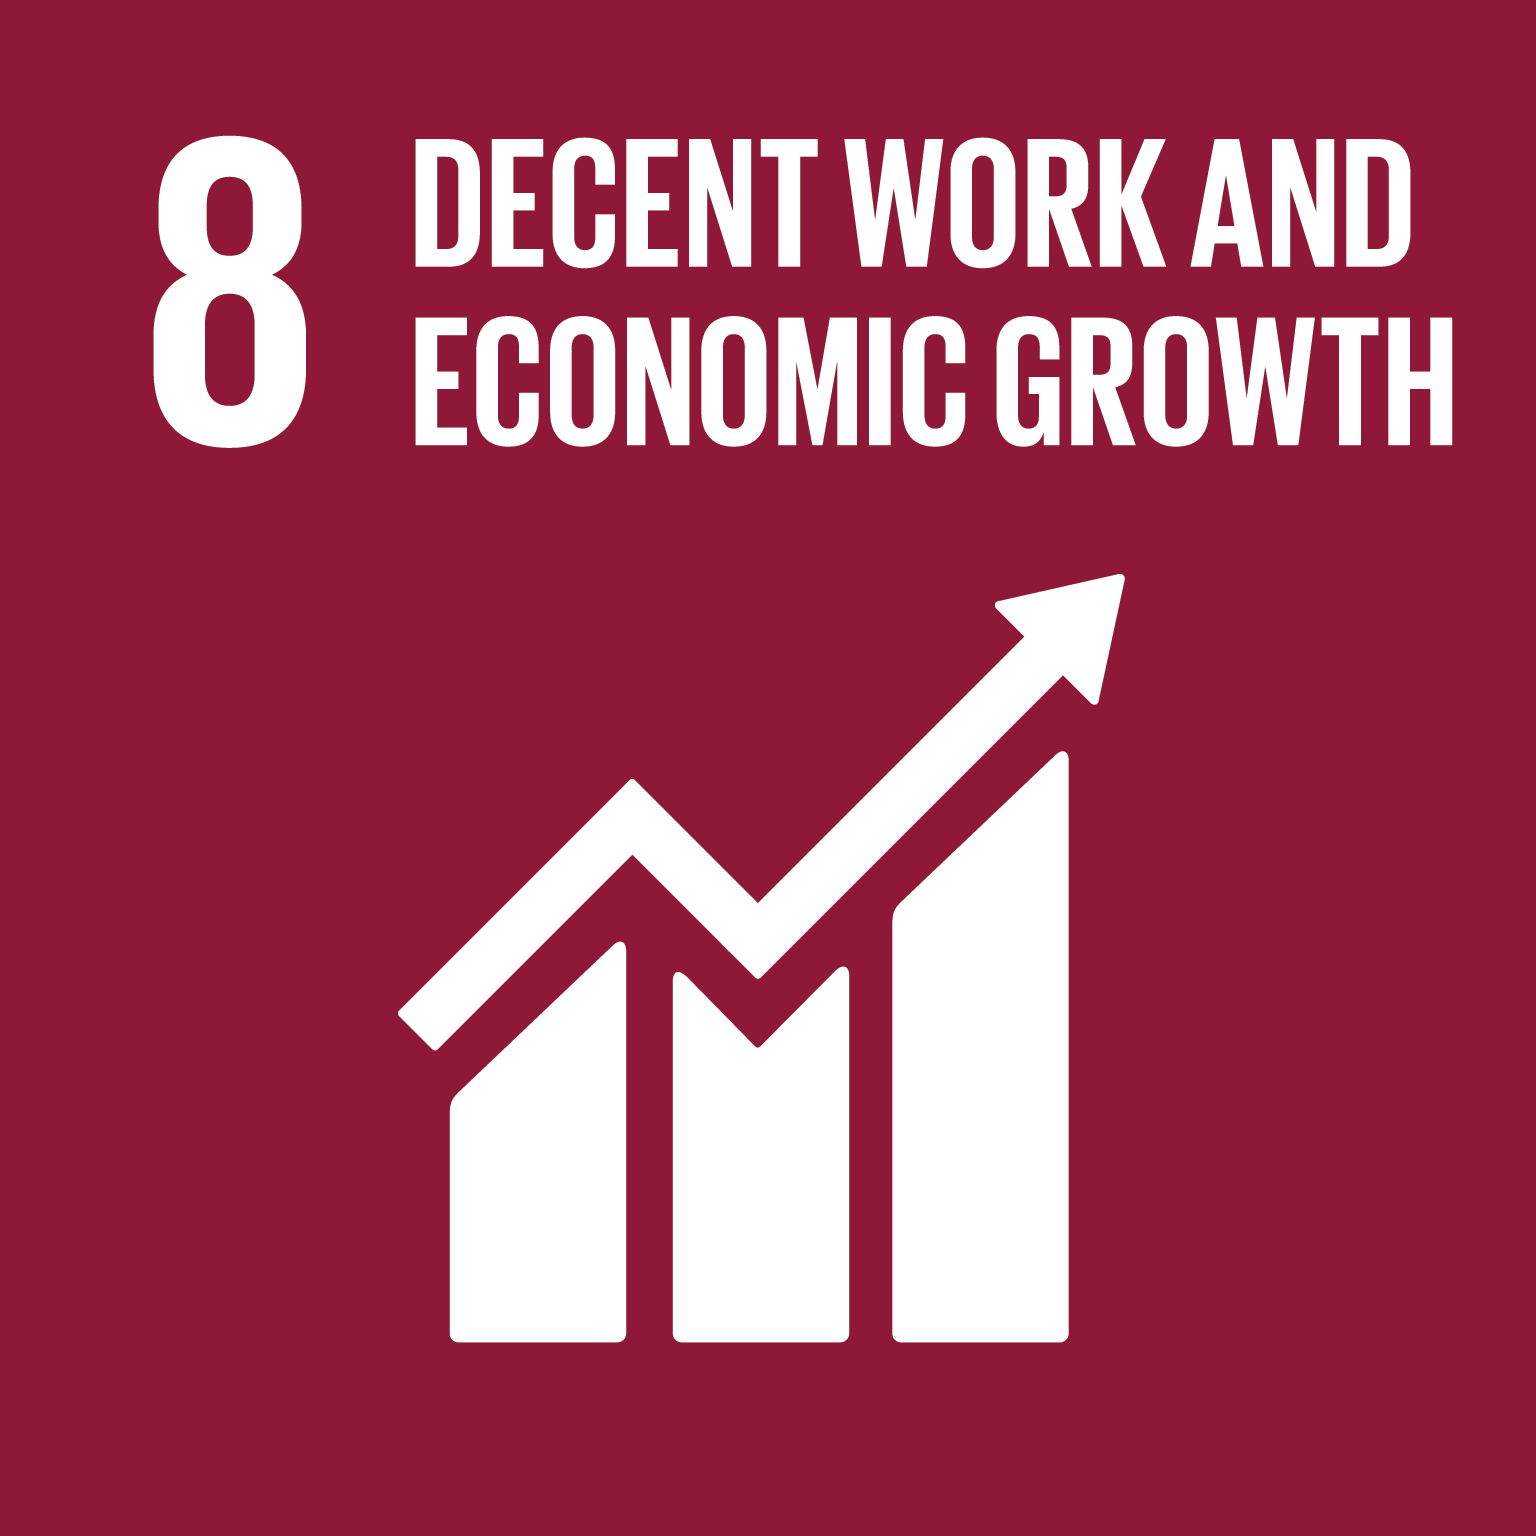 SDG Goal Number 8: Decent Work and Economic Growth